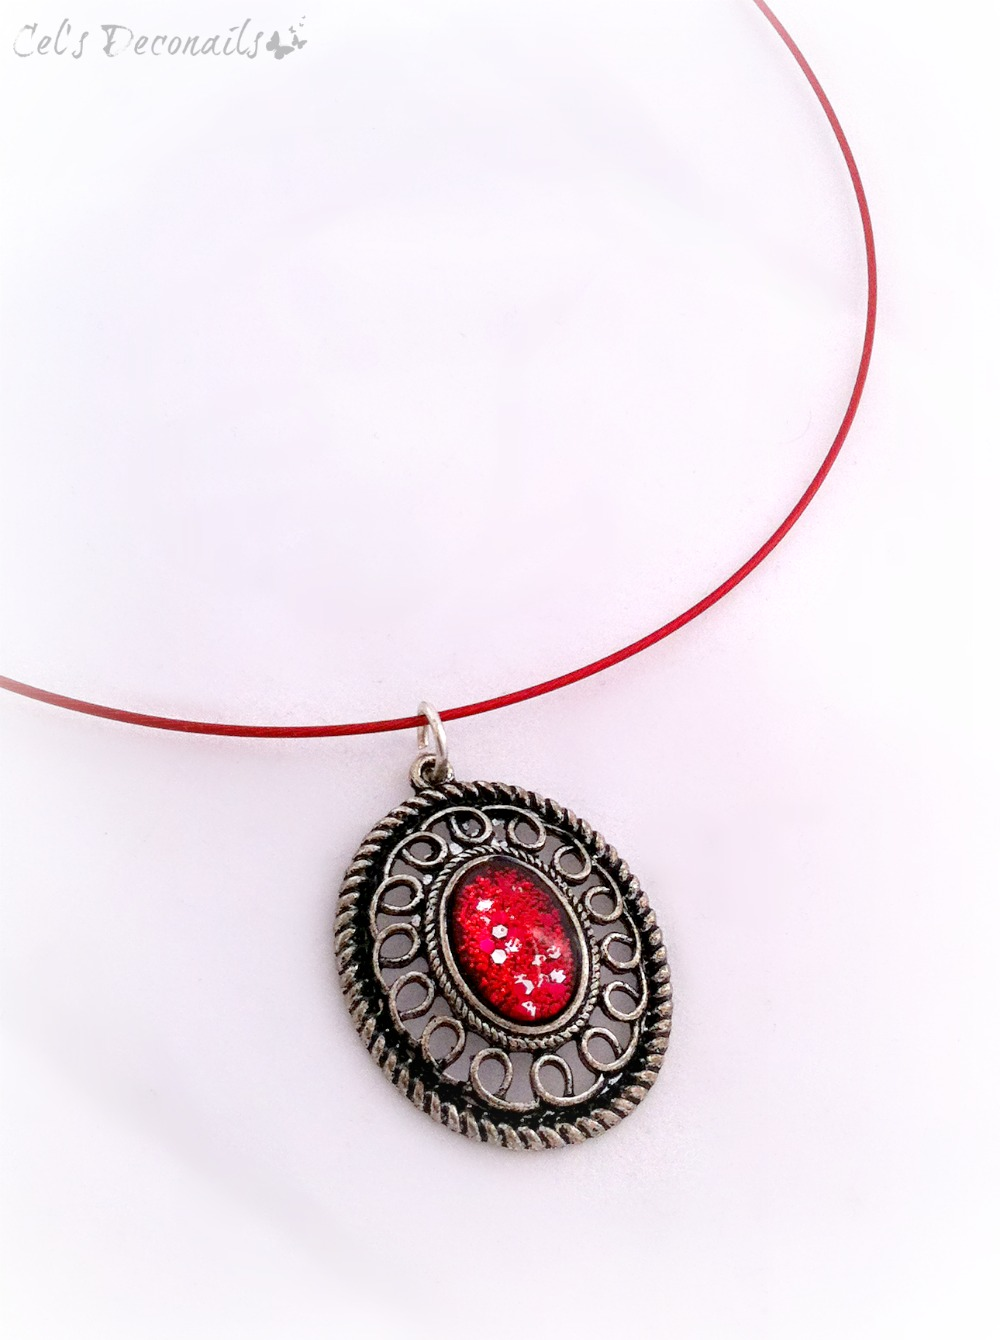 Red glitter victorian gothic pendant necklace celdeconail online red glitter victorian gothic pendant necklace thumbnail 2 aloadofball Gallery